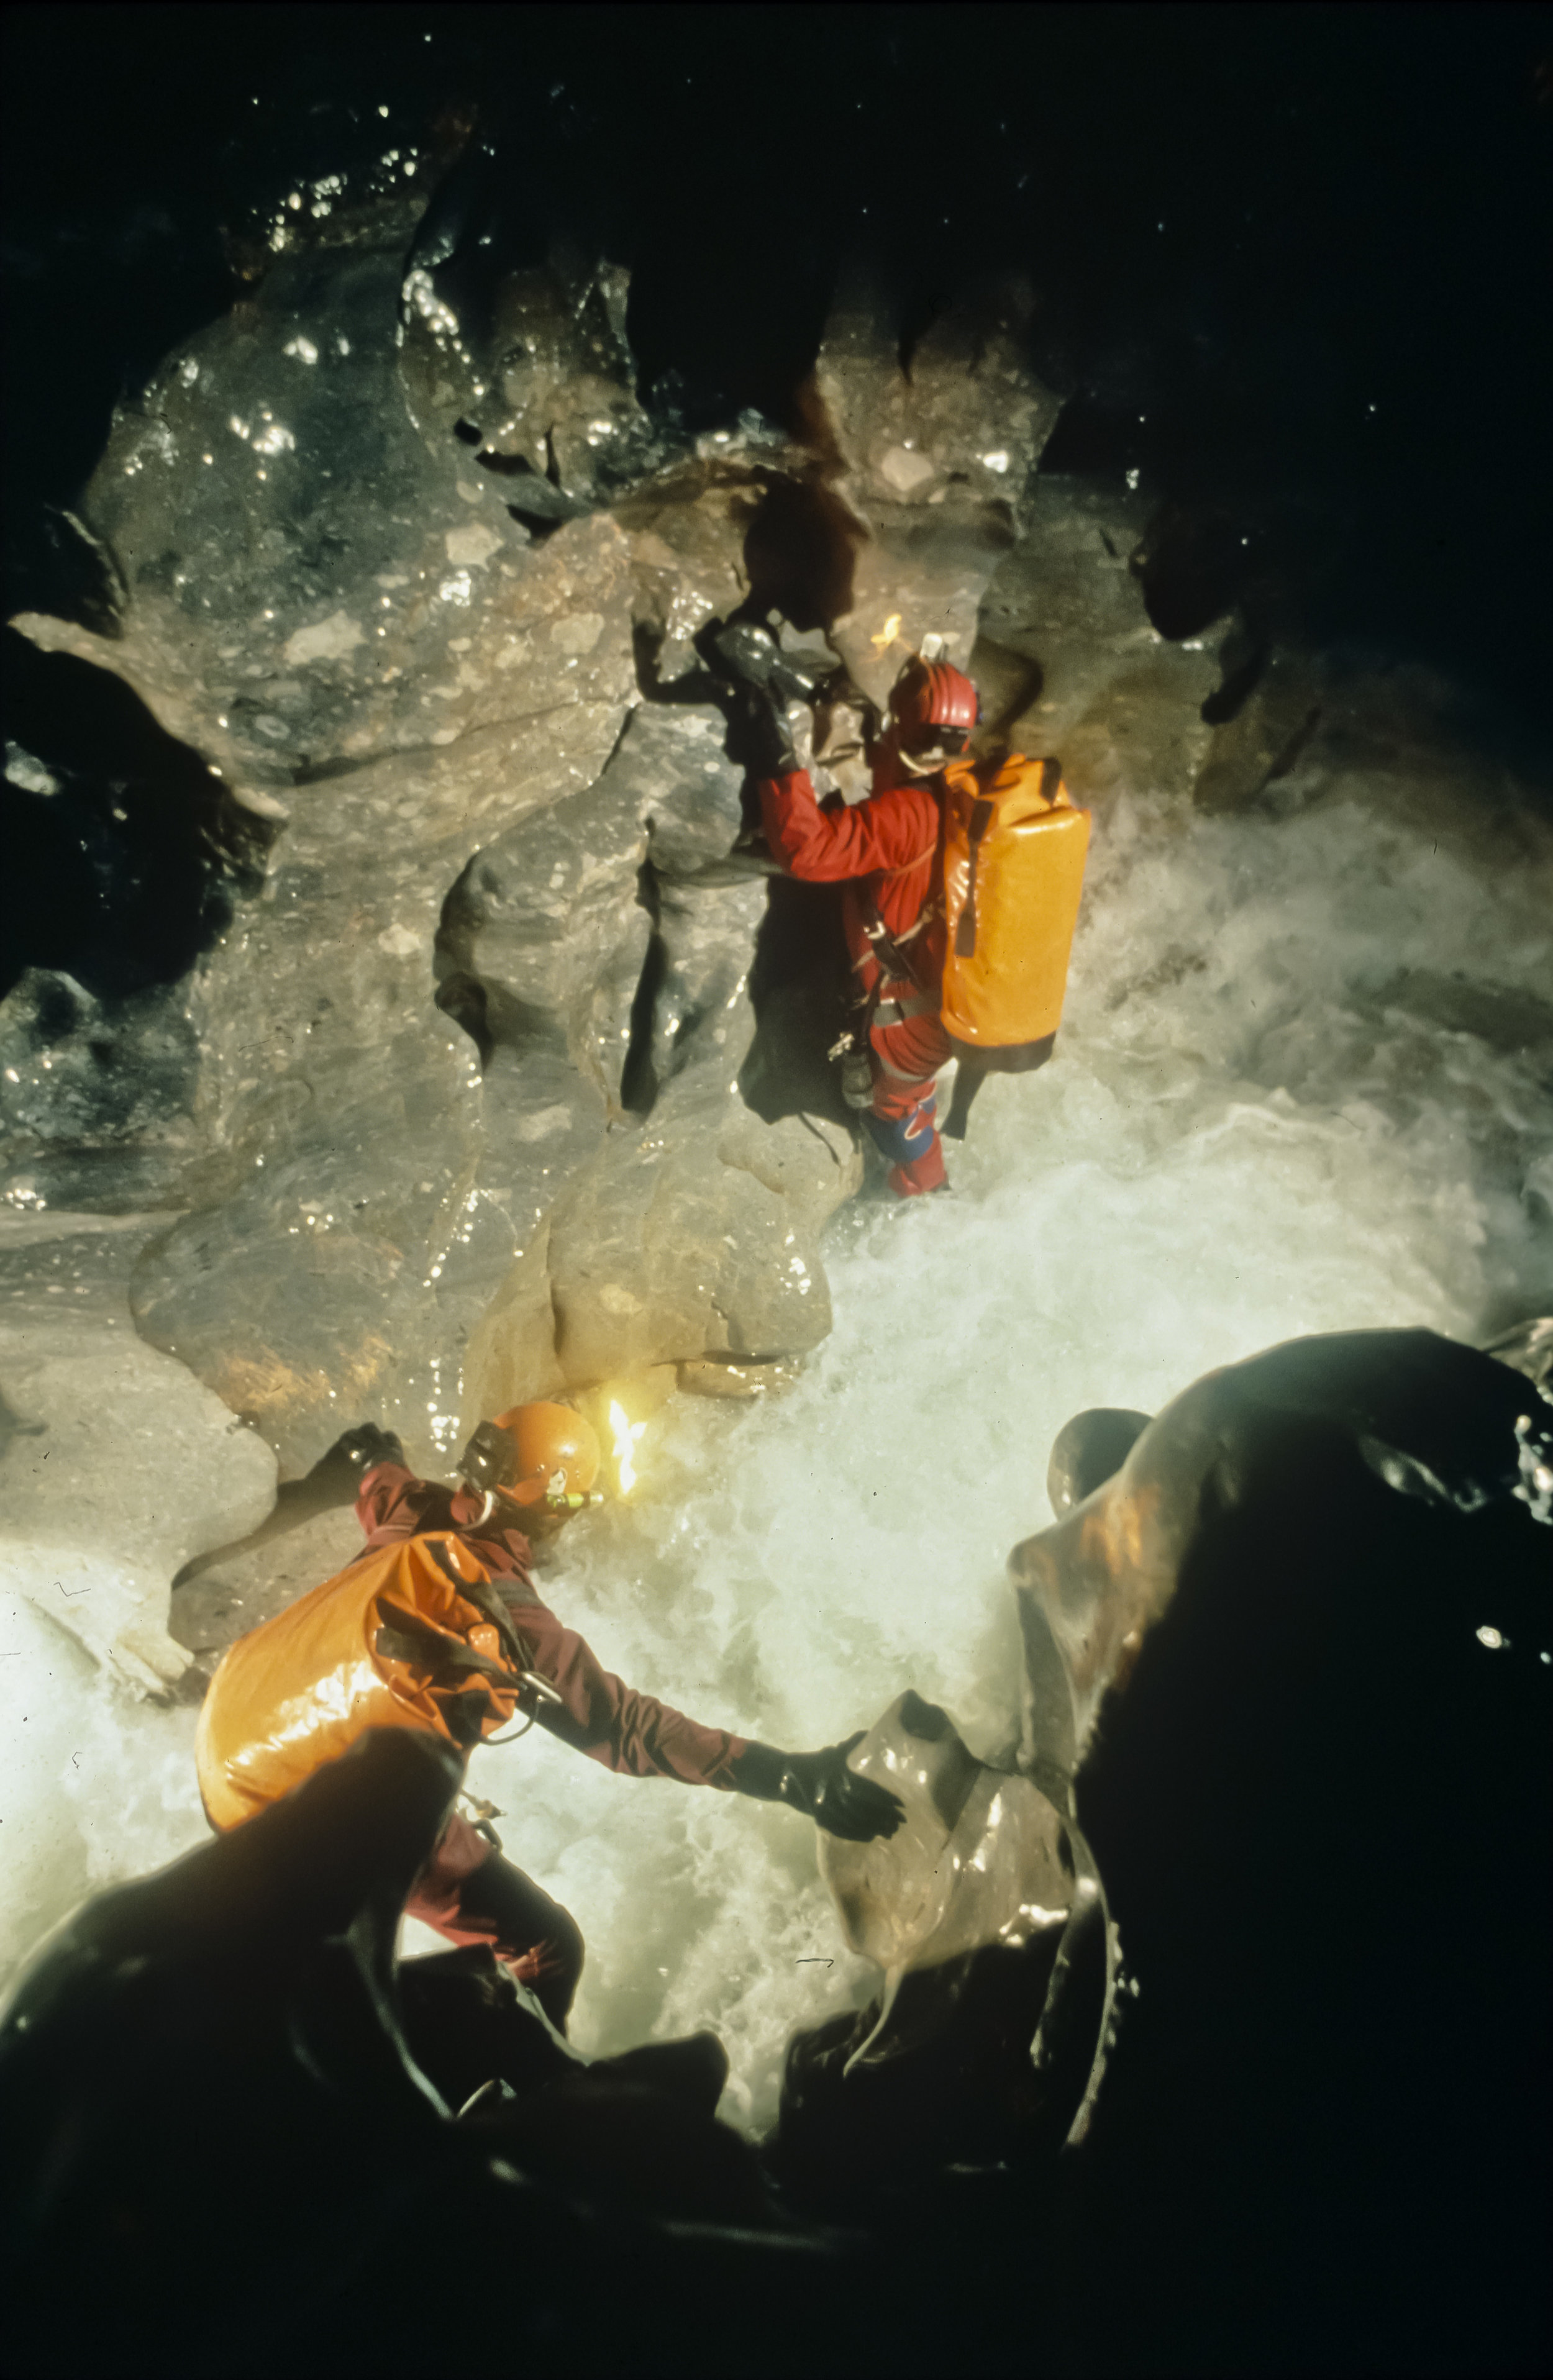 Sloan and Porter make their way along the Upper Gorge at a depth of 700m. Photo by U. S. Deep Caving Team/Wes Skiles.